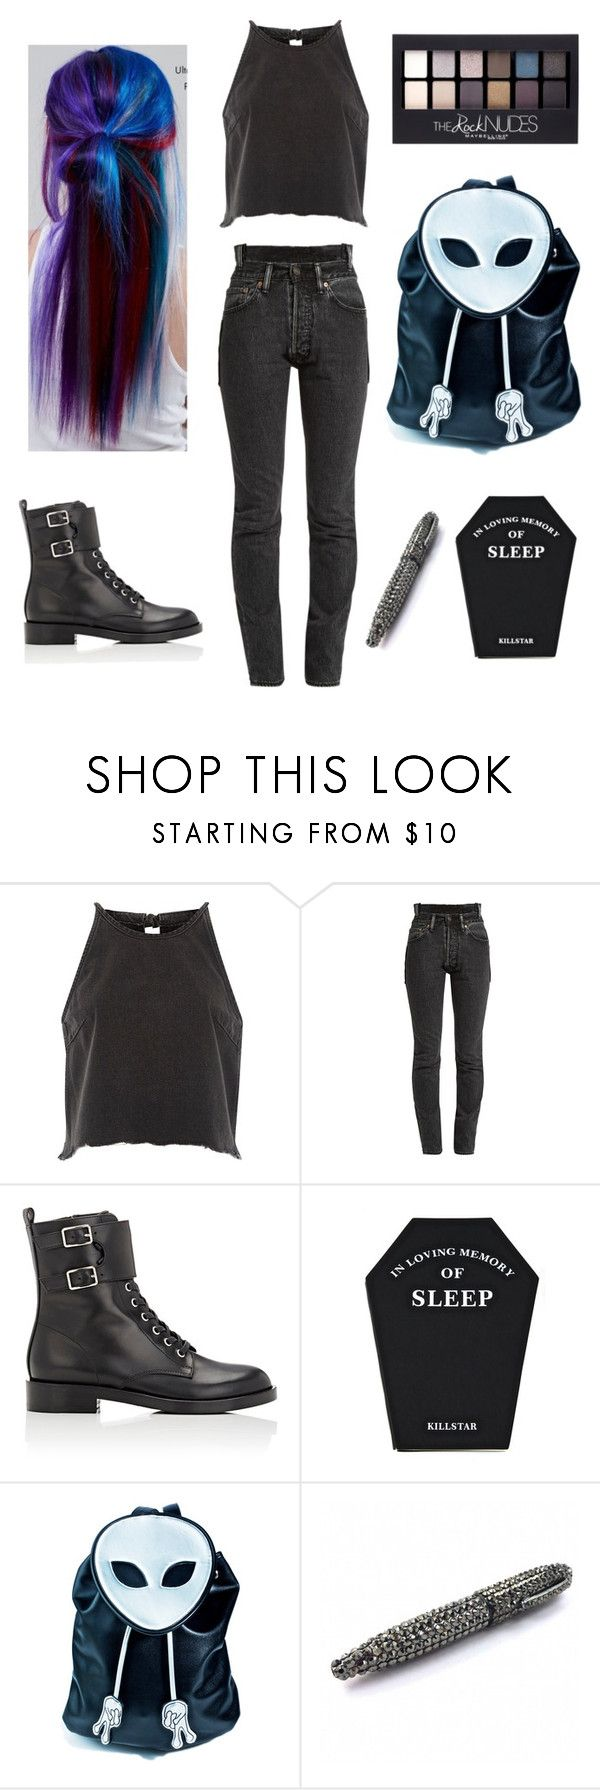 """Saturday Night"" by eternallyaaa ❤ liked on Polyvore featuring River Island, Vetements, Gianvito Rossi, Killstar, Current Mood, Maybelline and Manic Panic NYC"